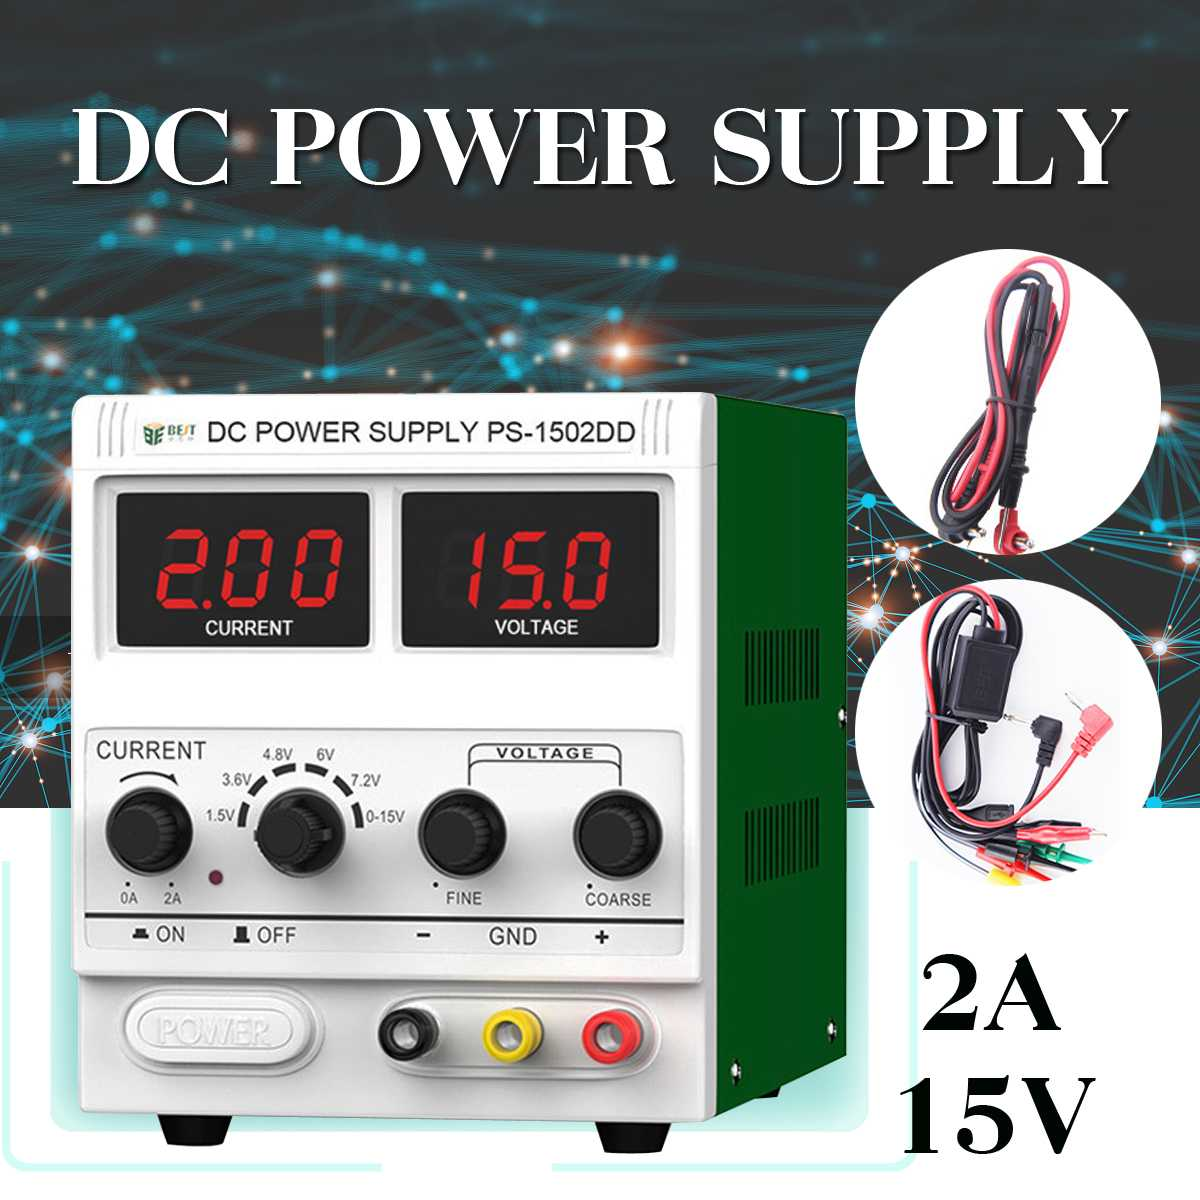 LED Digital Switching DC Power Supply Voltage Regulators Lab Repair Tool Adjustable <font><b>1502D</b></font>+ 110/220V Power Source New image